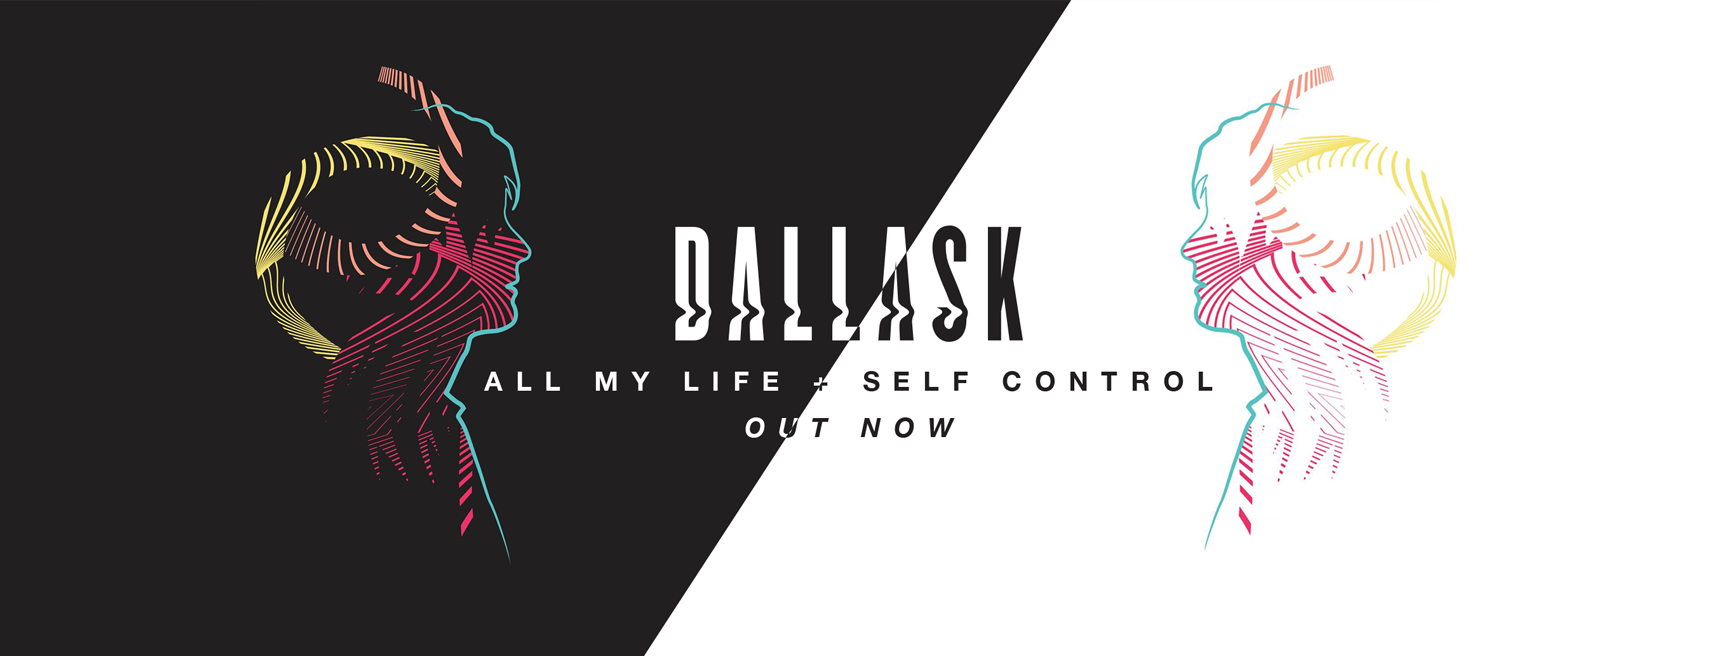 DallasK_AllMyLife_SelfControl_Cover